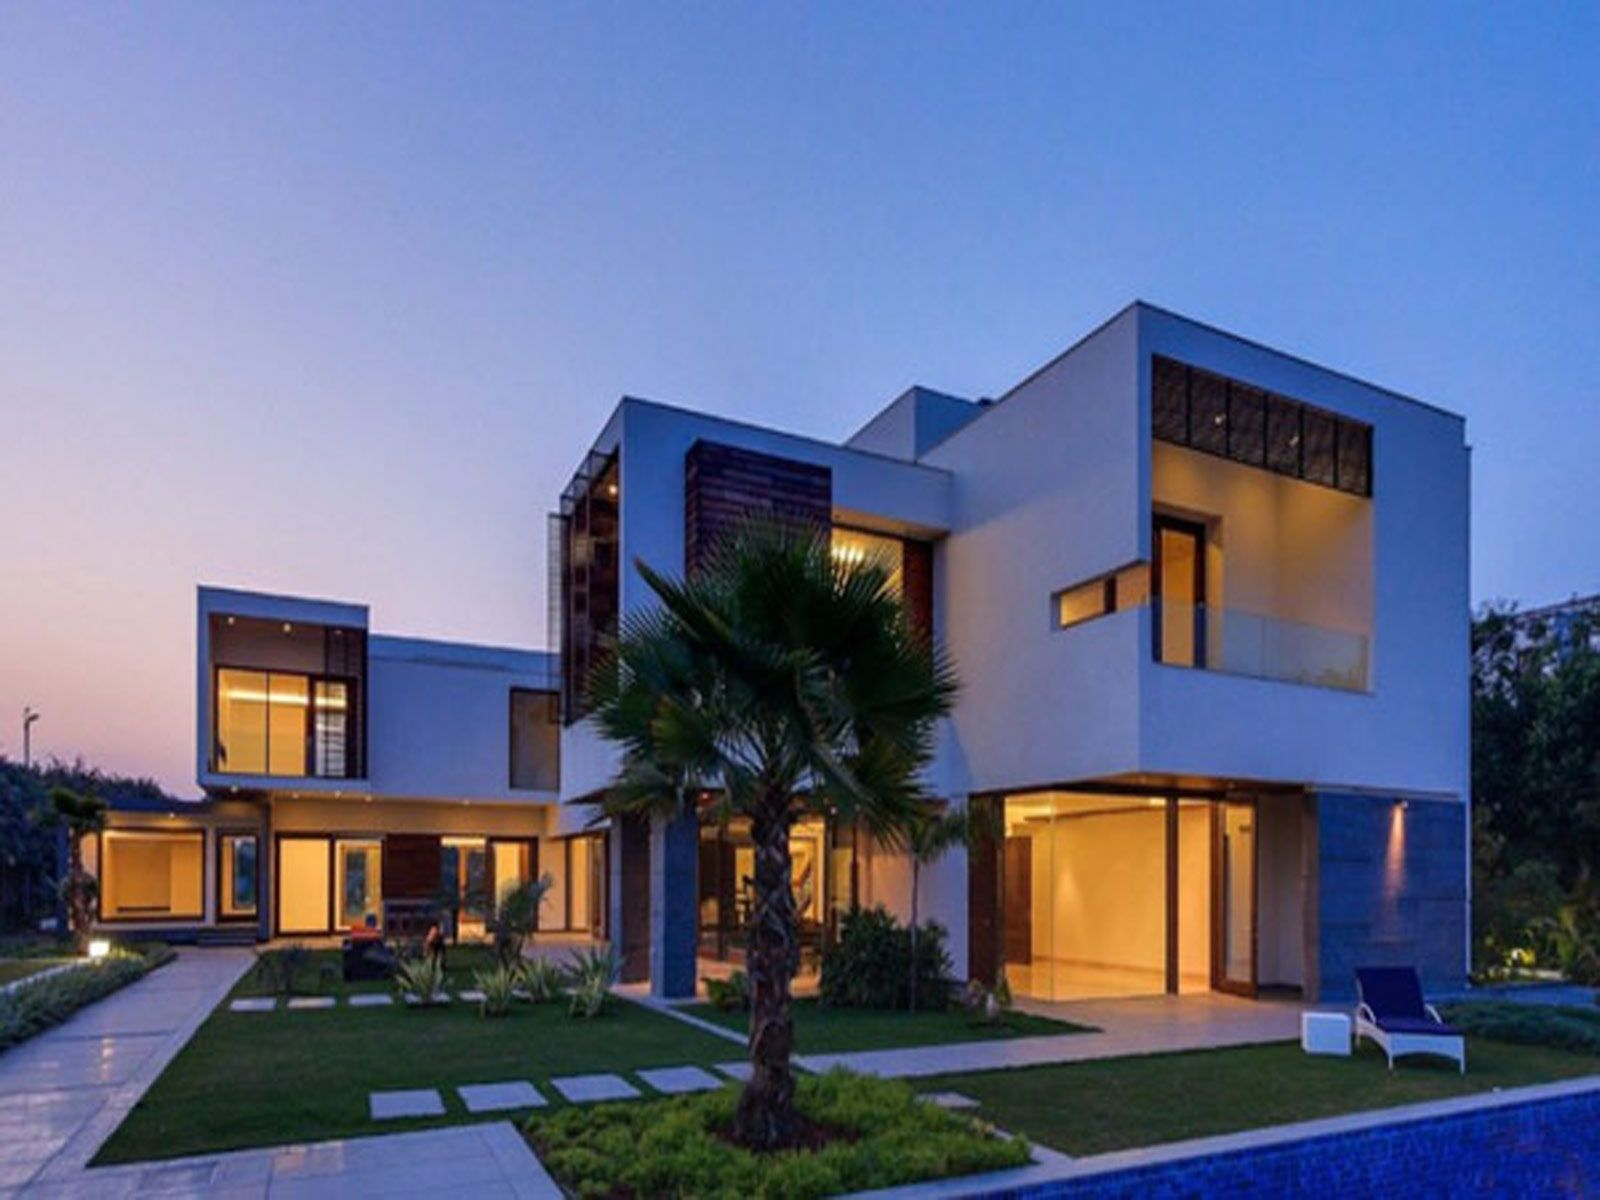 Contemporary luxury home and architecture in new design